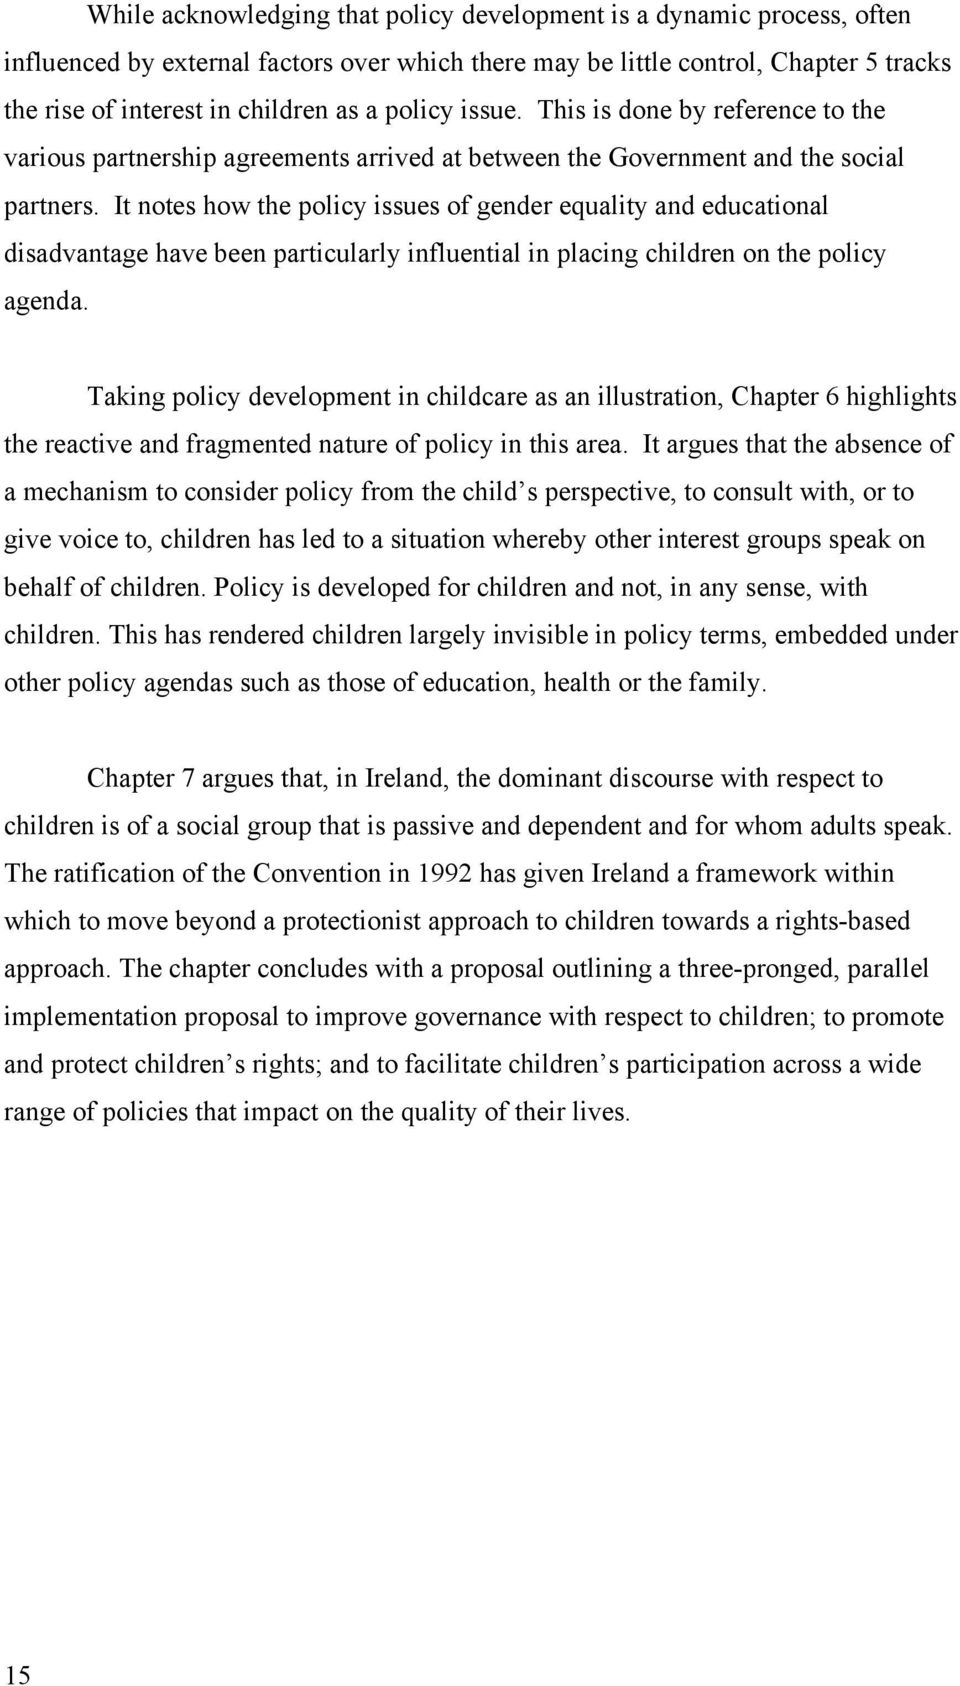 It notes how the policy issues of gender equality and educational disadvantage have been particularly influential in placing children on the policy agenda.